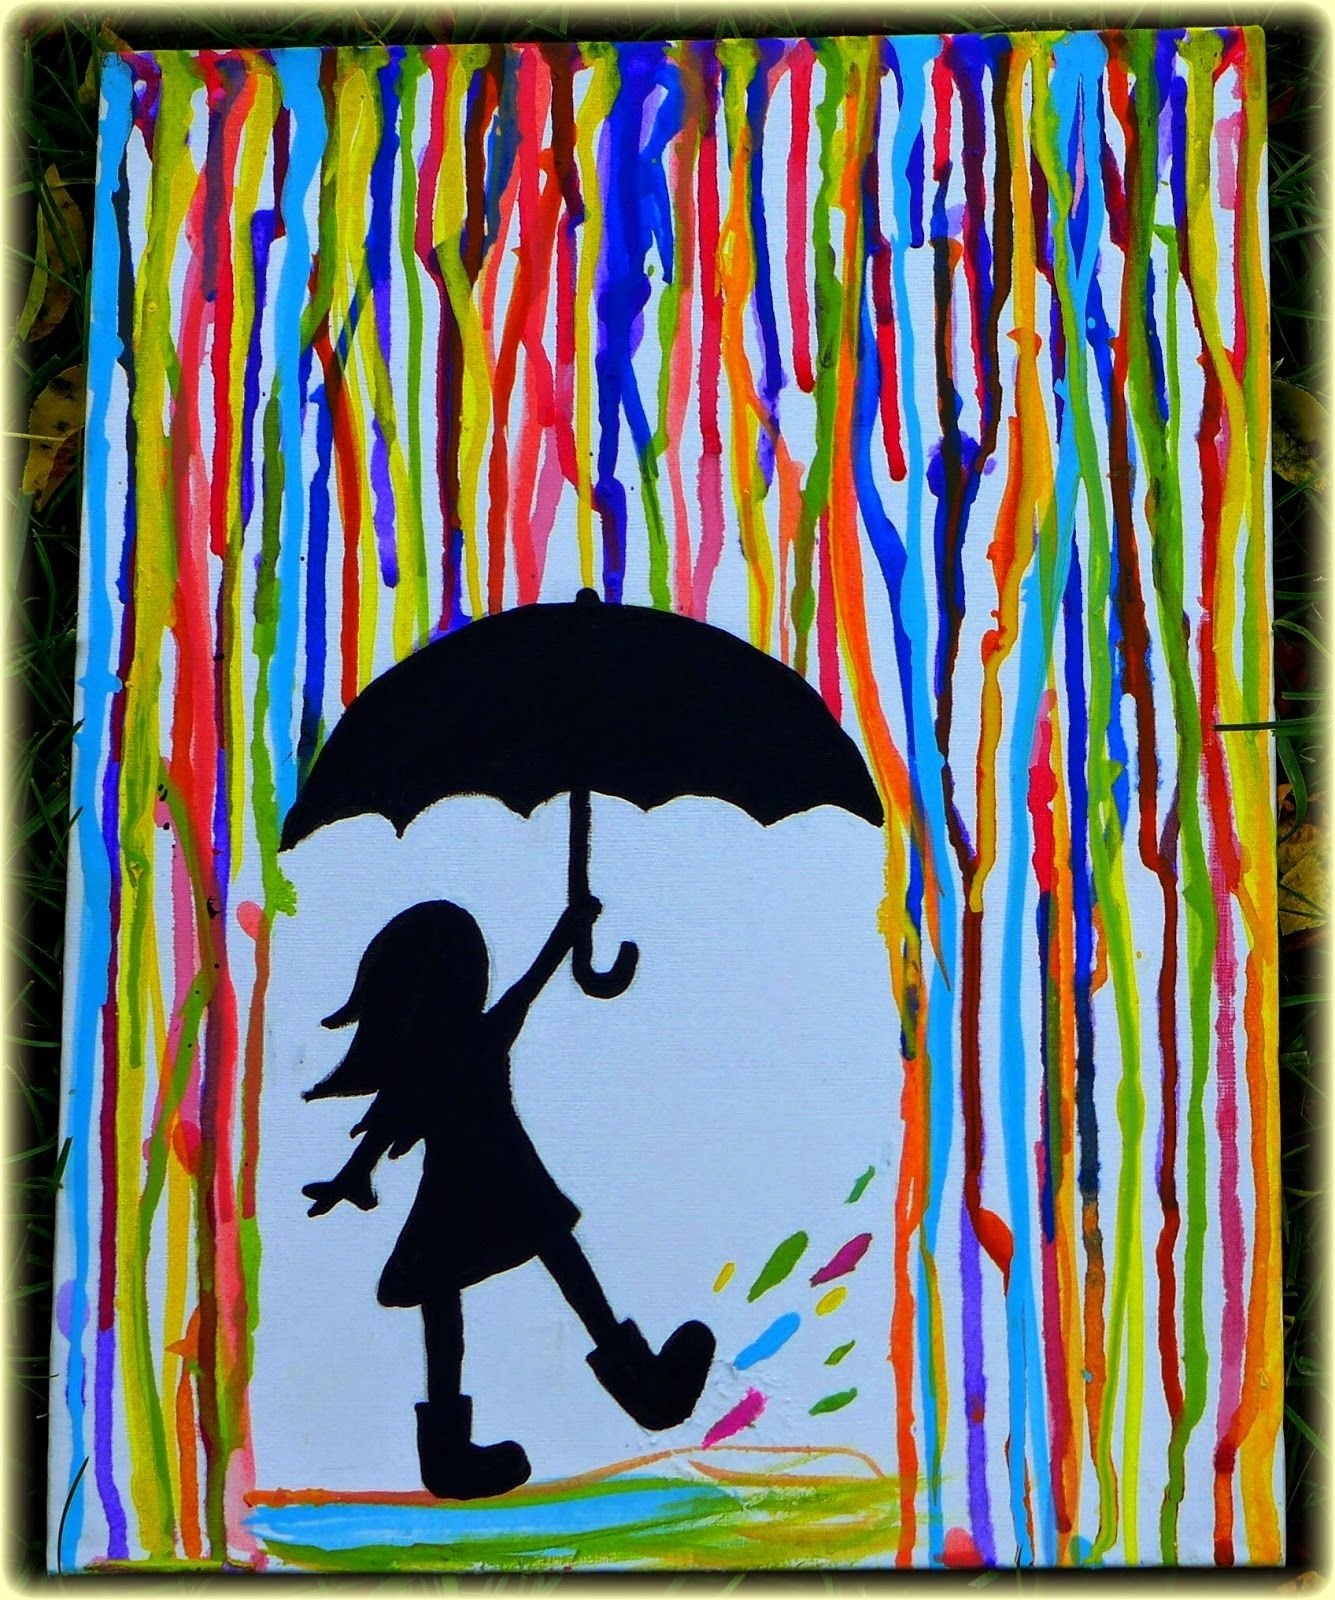 10 Ideal Easy Painting Ideas On Canvas an easy acrylic painting for beginners harlie pinterest 1 2020